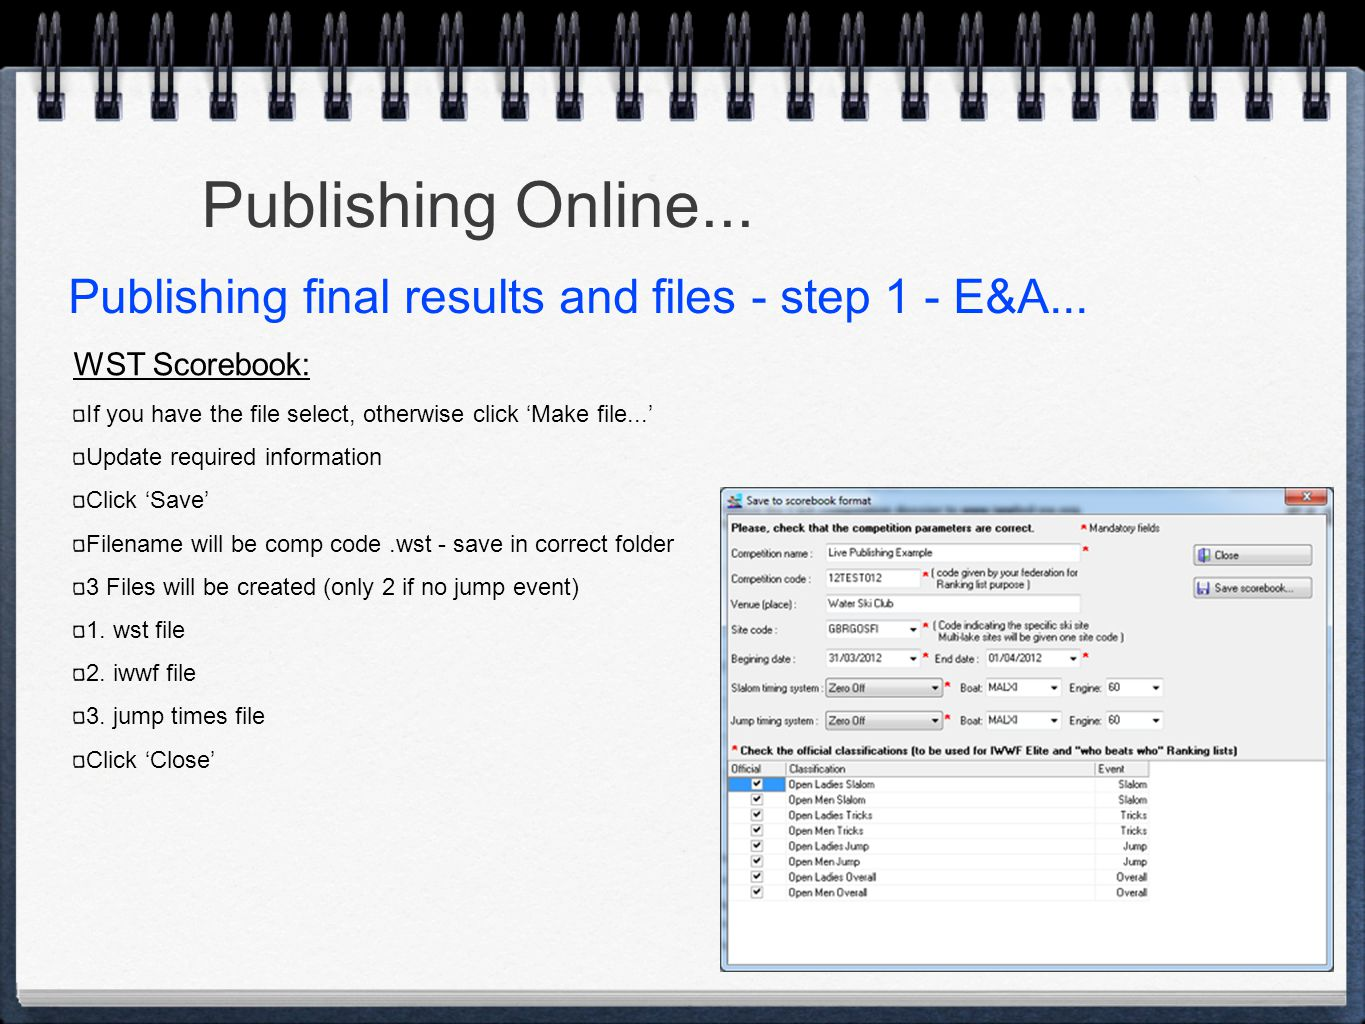 Publishing Online... WST Scorebook: If you have the file select, otherwise click 'Make file...' Update required information Click 'Save' Filename will